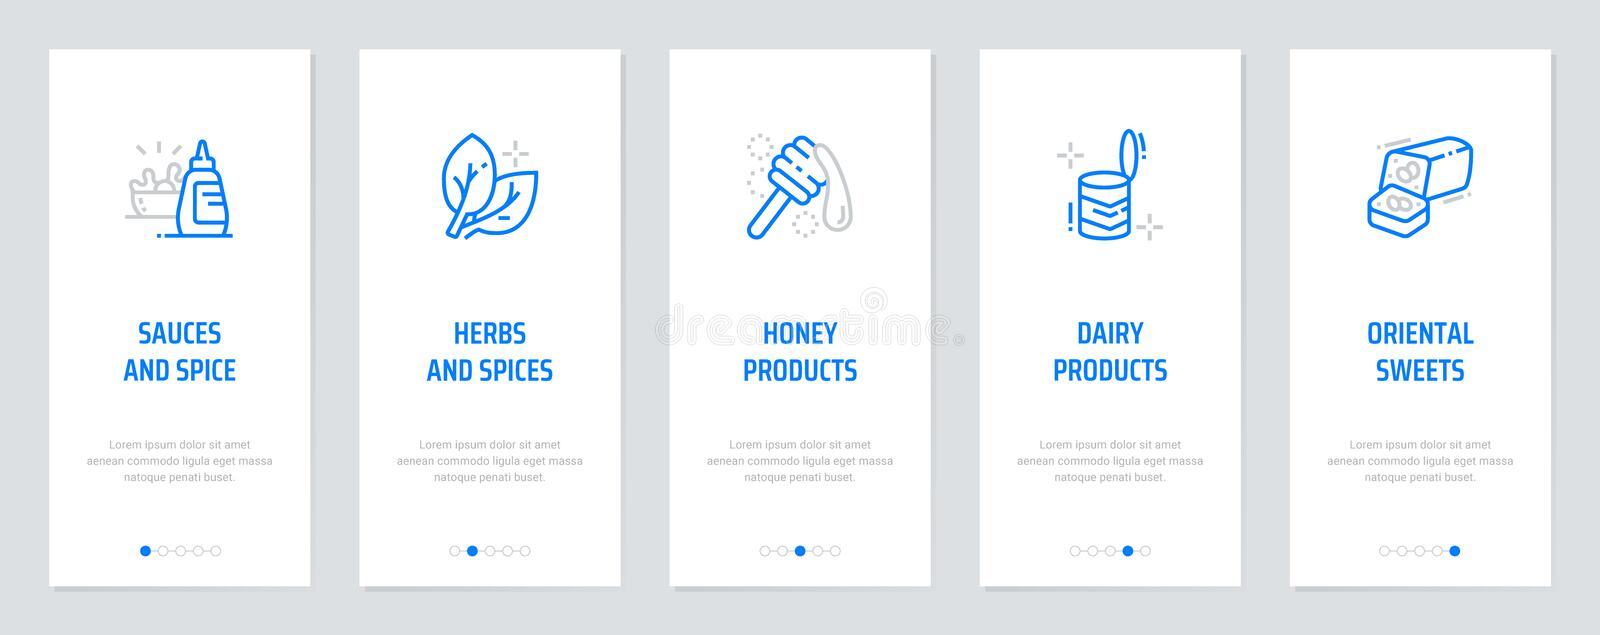 Sauces, Herbs and spices, Honey, Dairy products, Oriental sweets Vertical Cards with strong metaphors. royalty free illustration